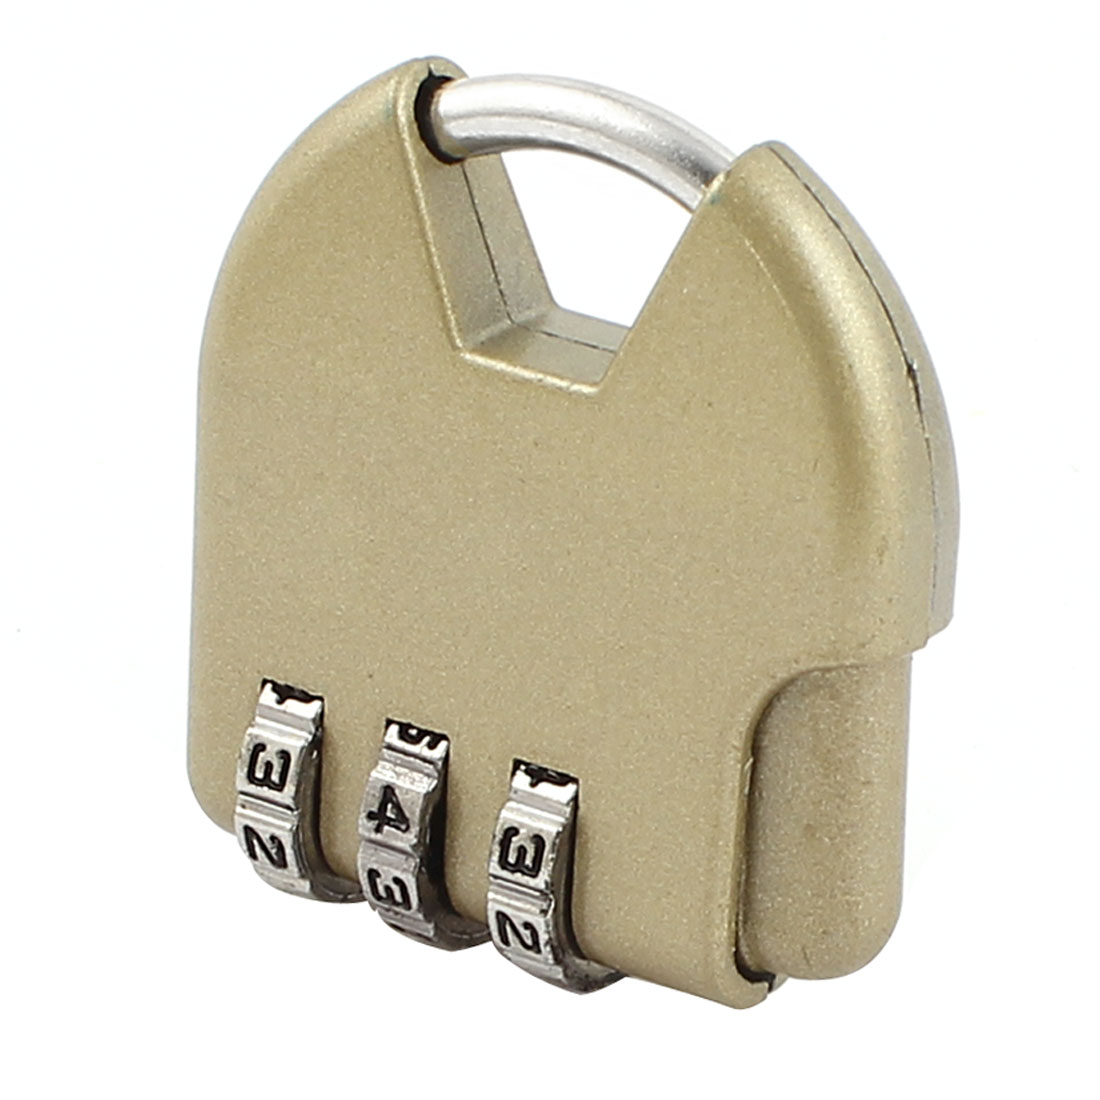 Luggage 3 Dial Digitals Password Combination Safety Padlock Lock Bronze Tone